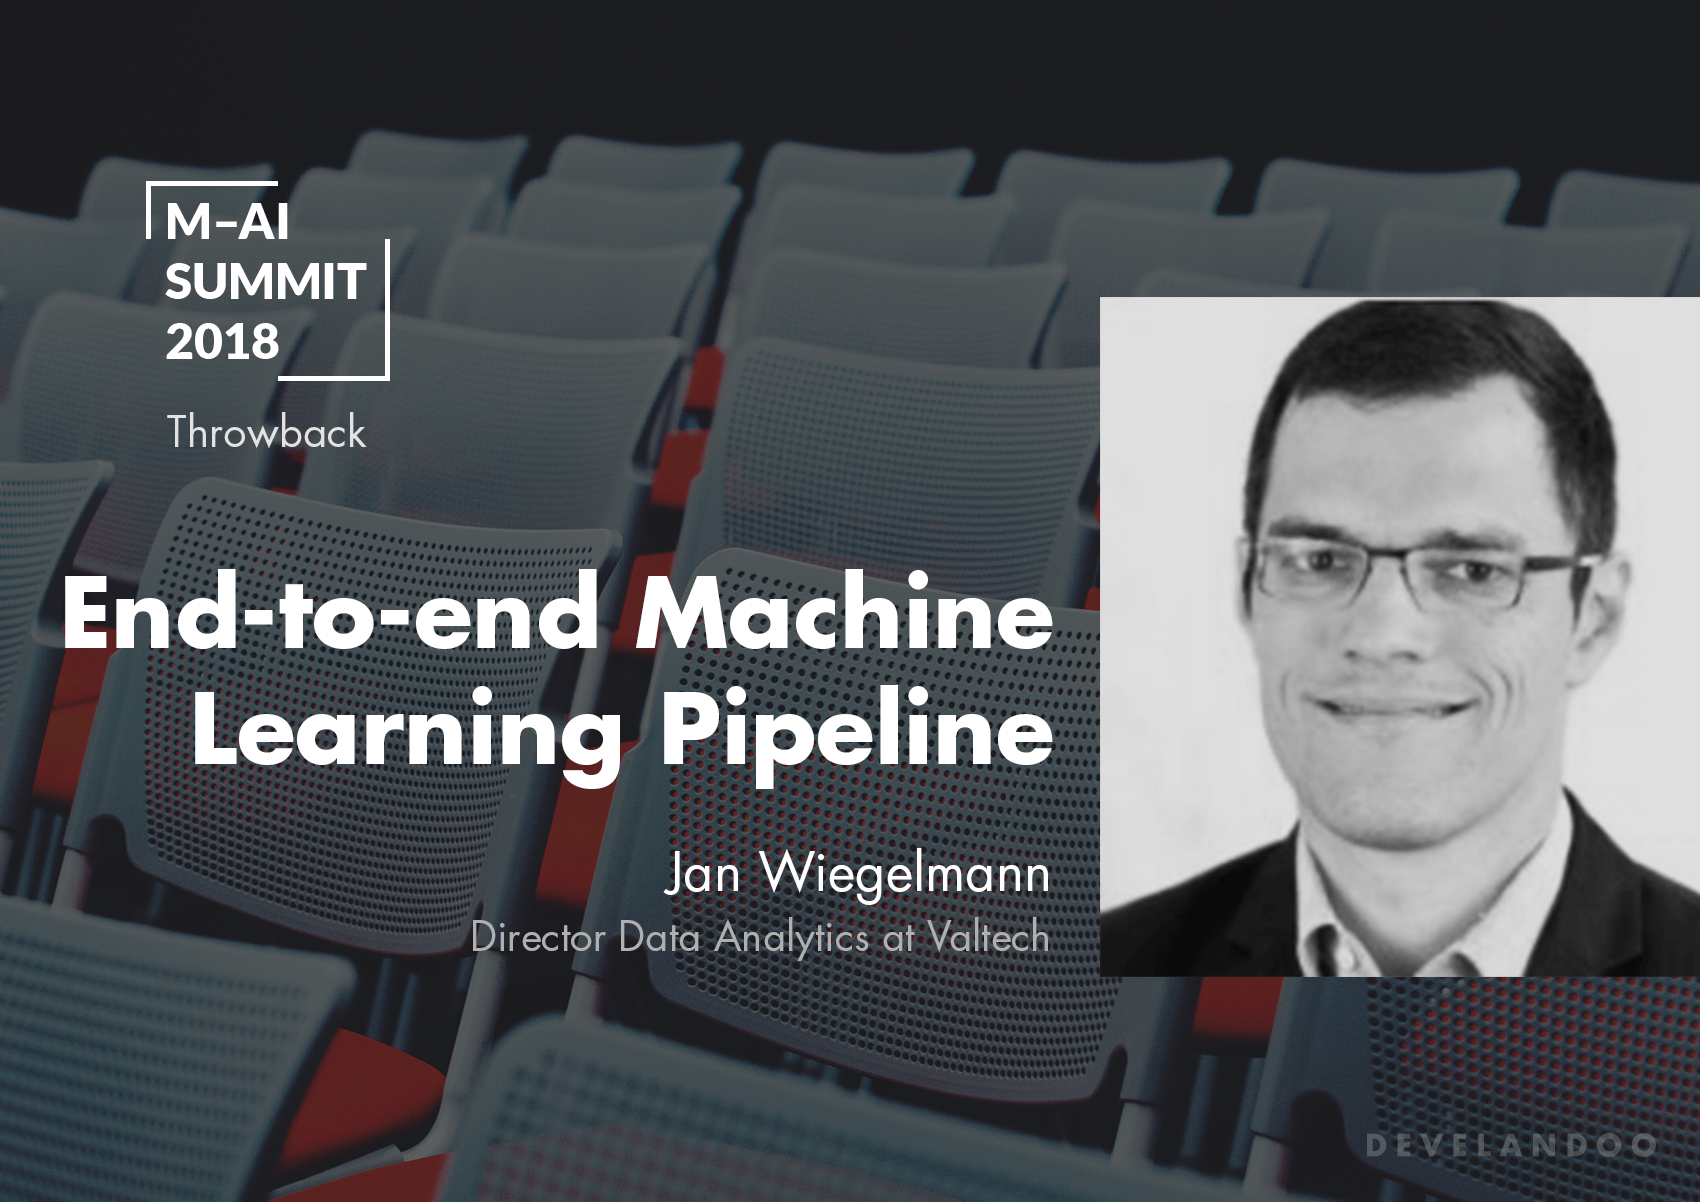 Throwback to Munich-AI Summit 2018. Jan Wiegelmann Discusses an End-to-End Array of AI Use Cases